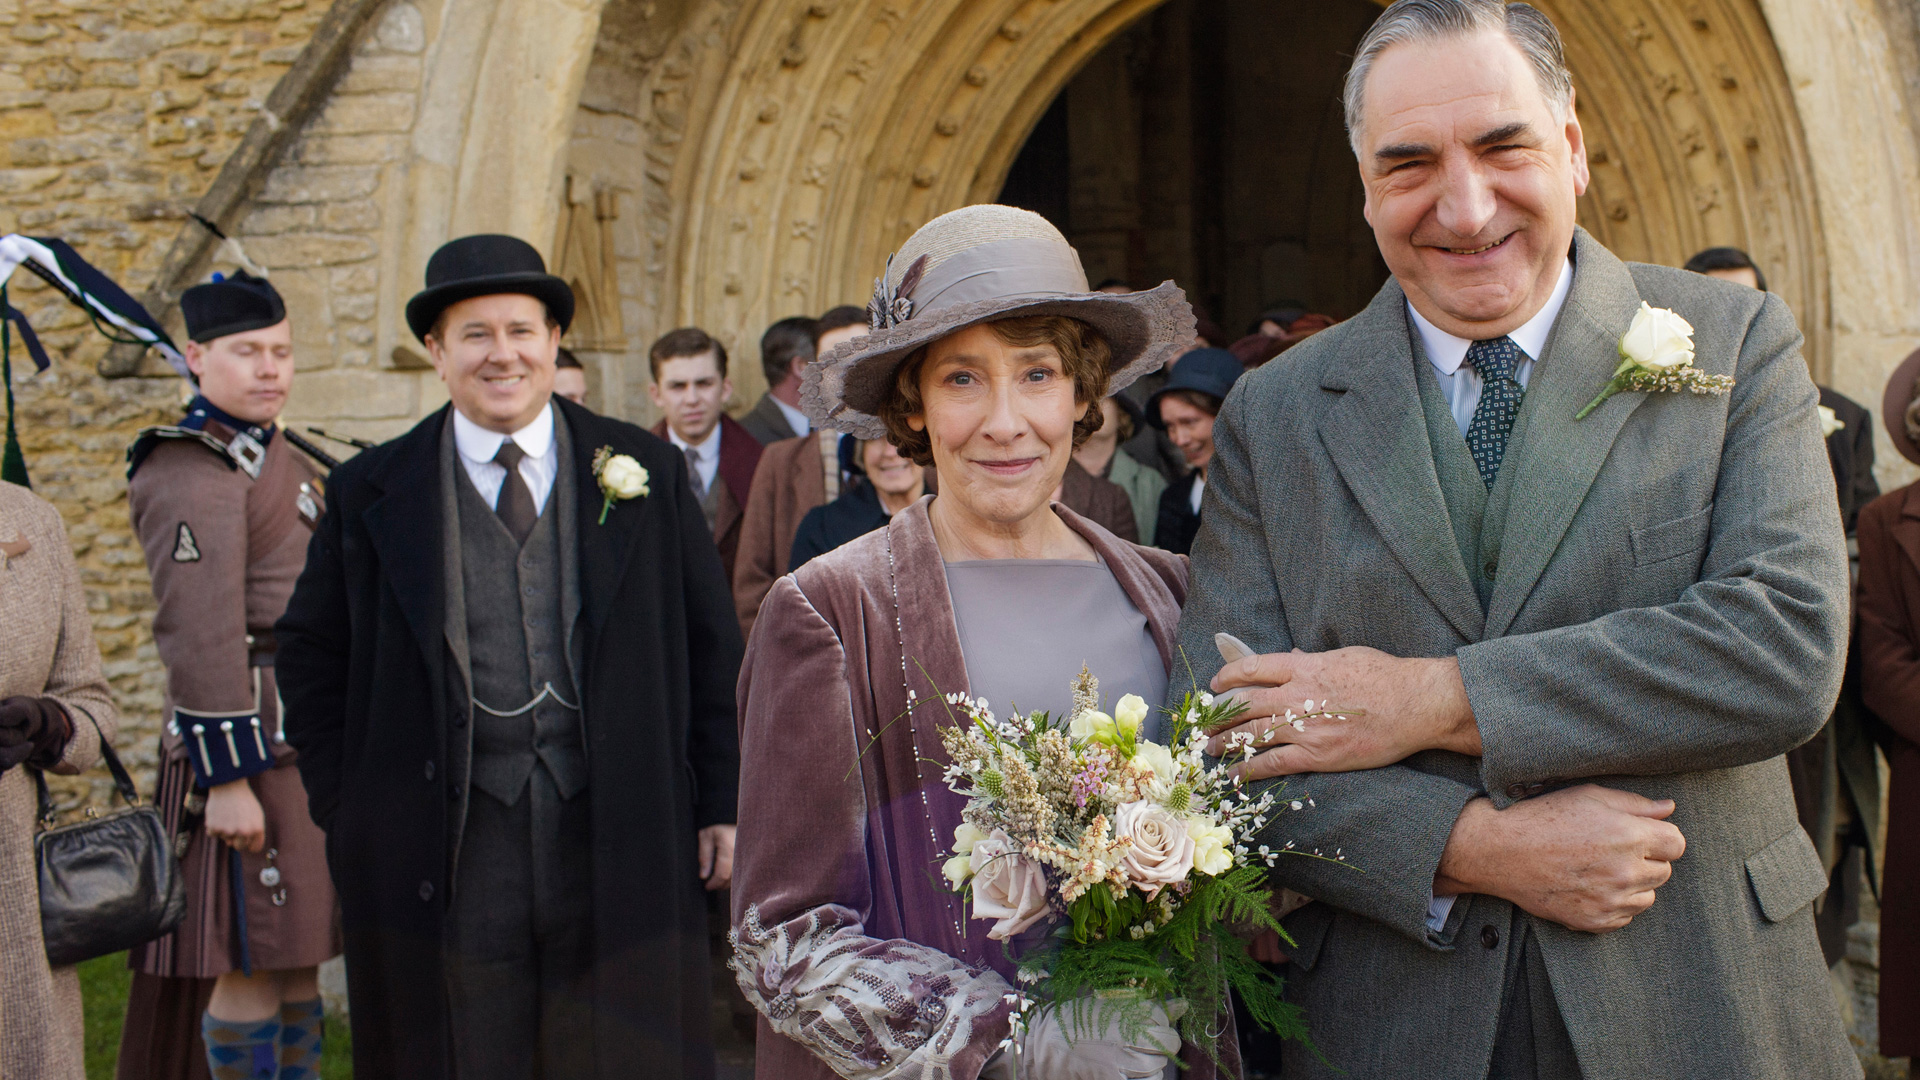 Downton Abbey movie to go into production 'any minute now'